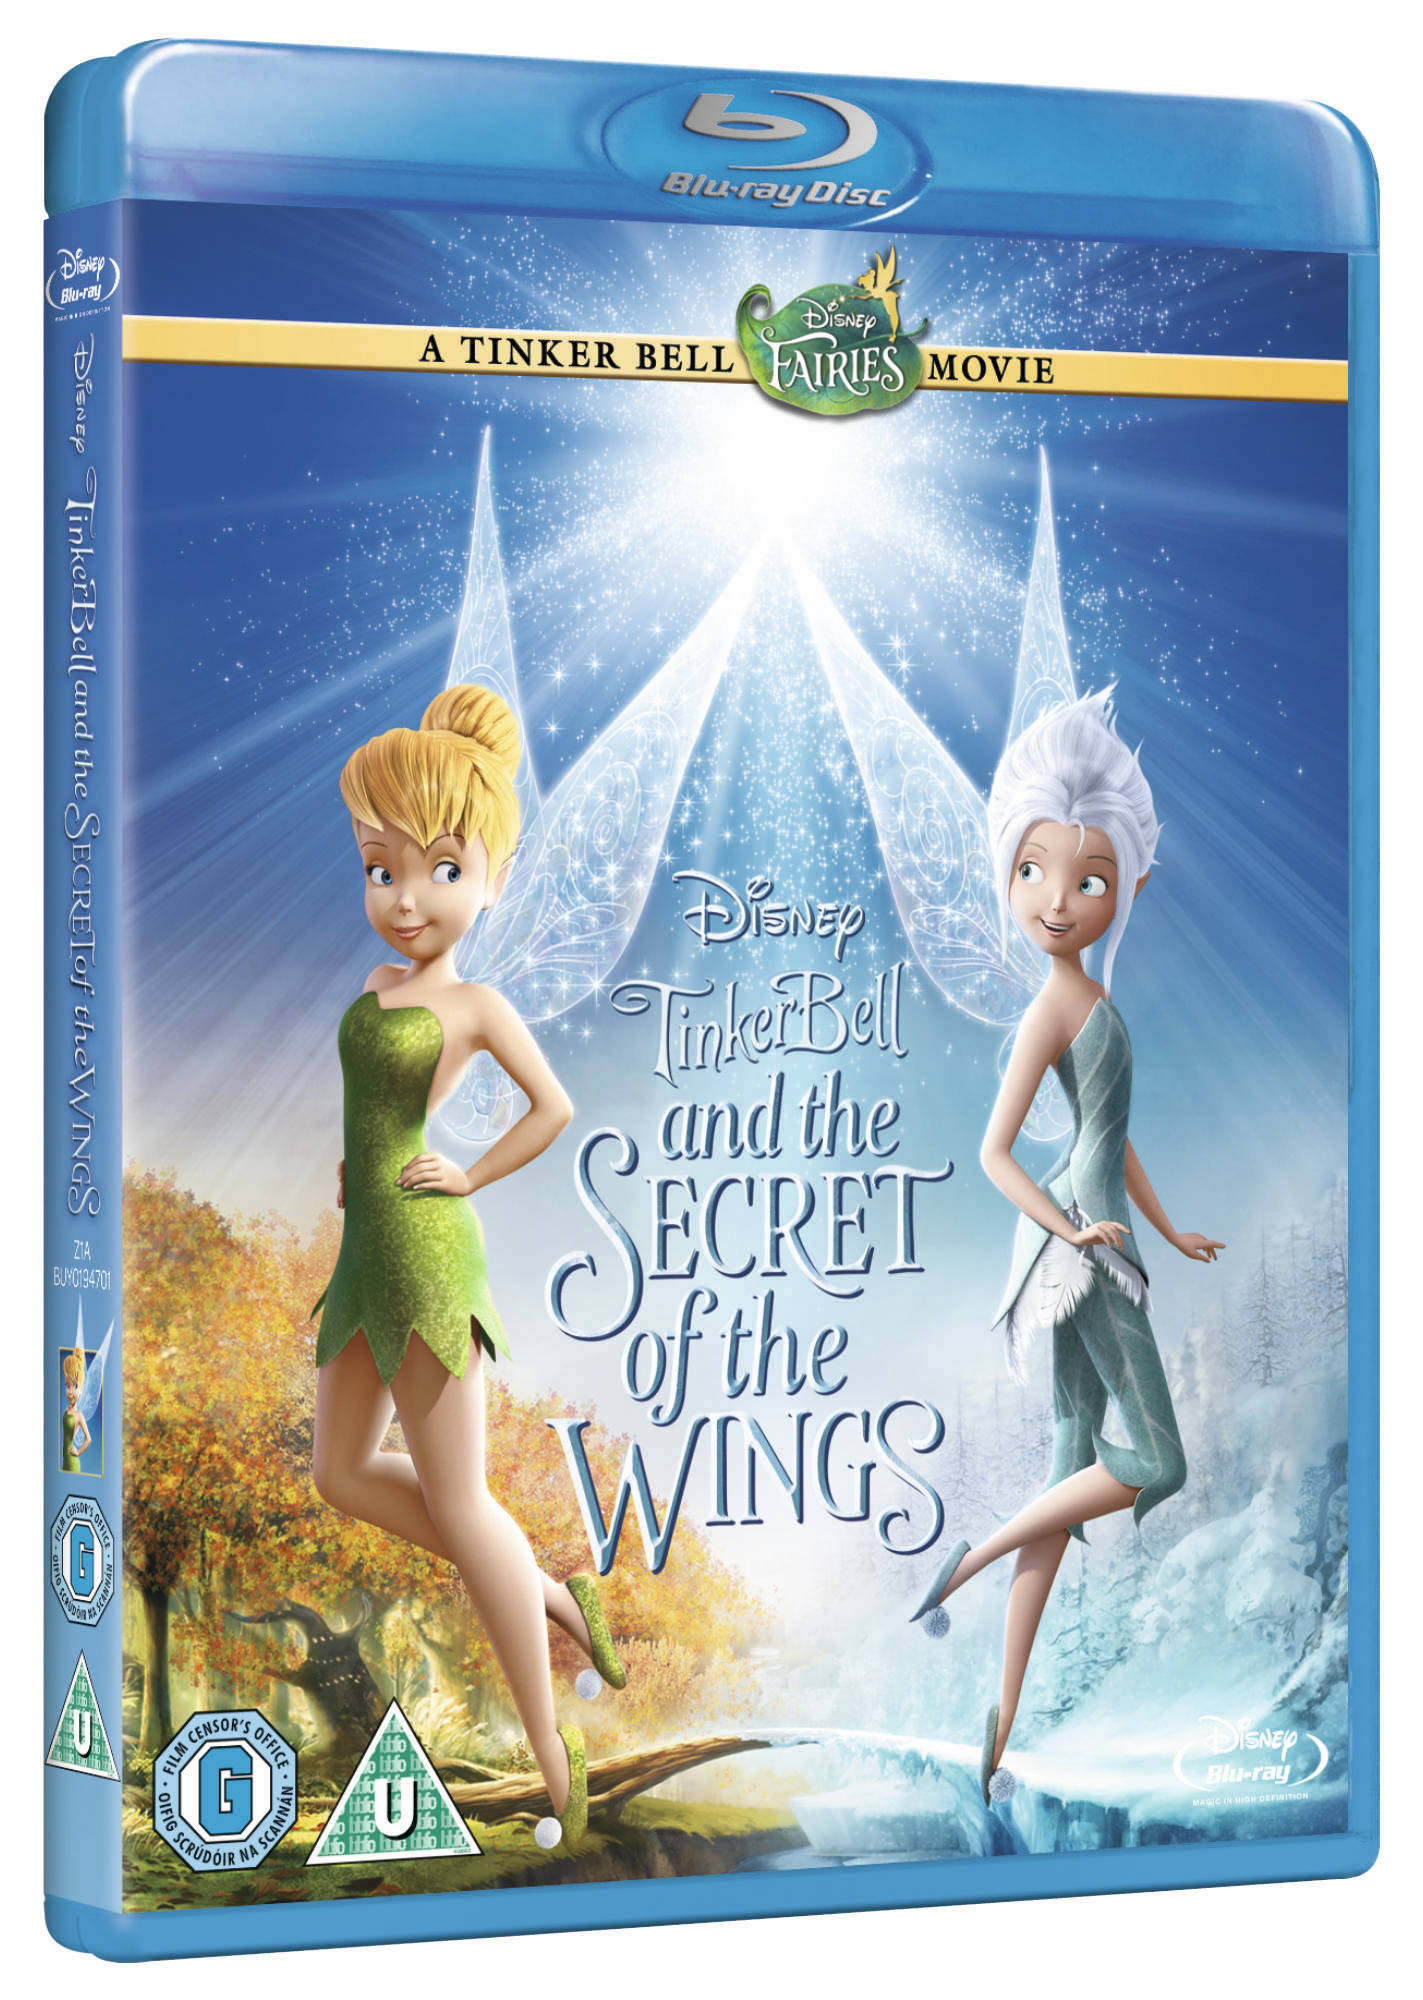 Tinkerbell in the secret wings necklace